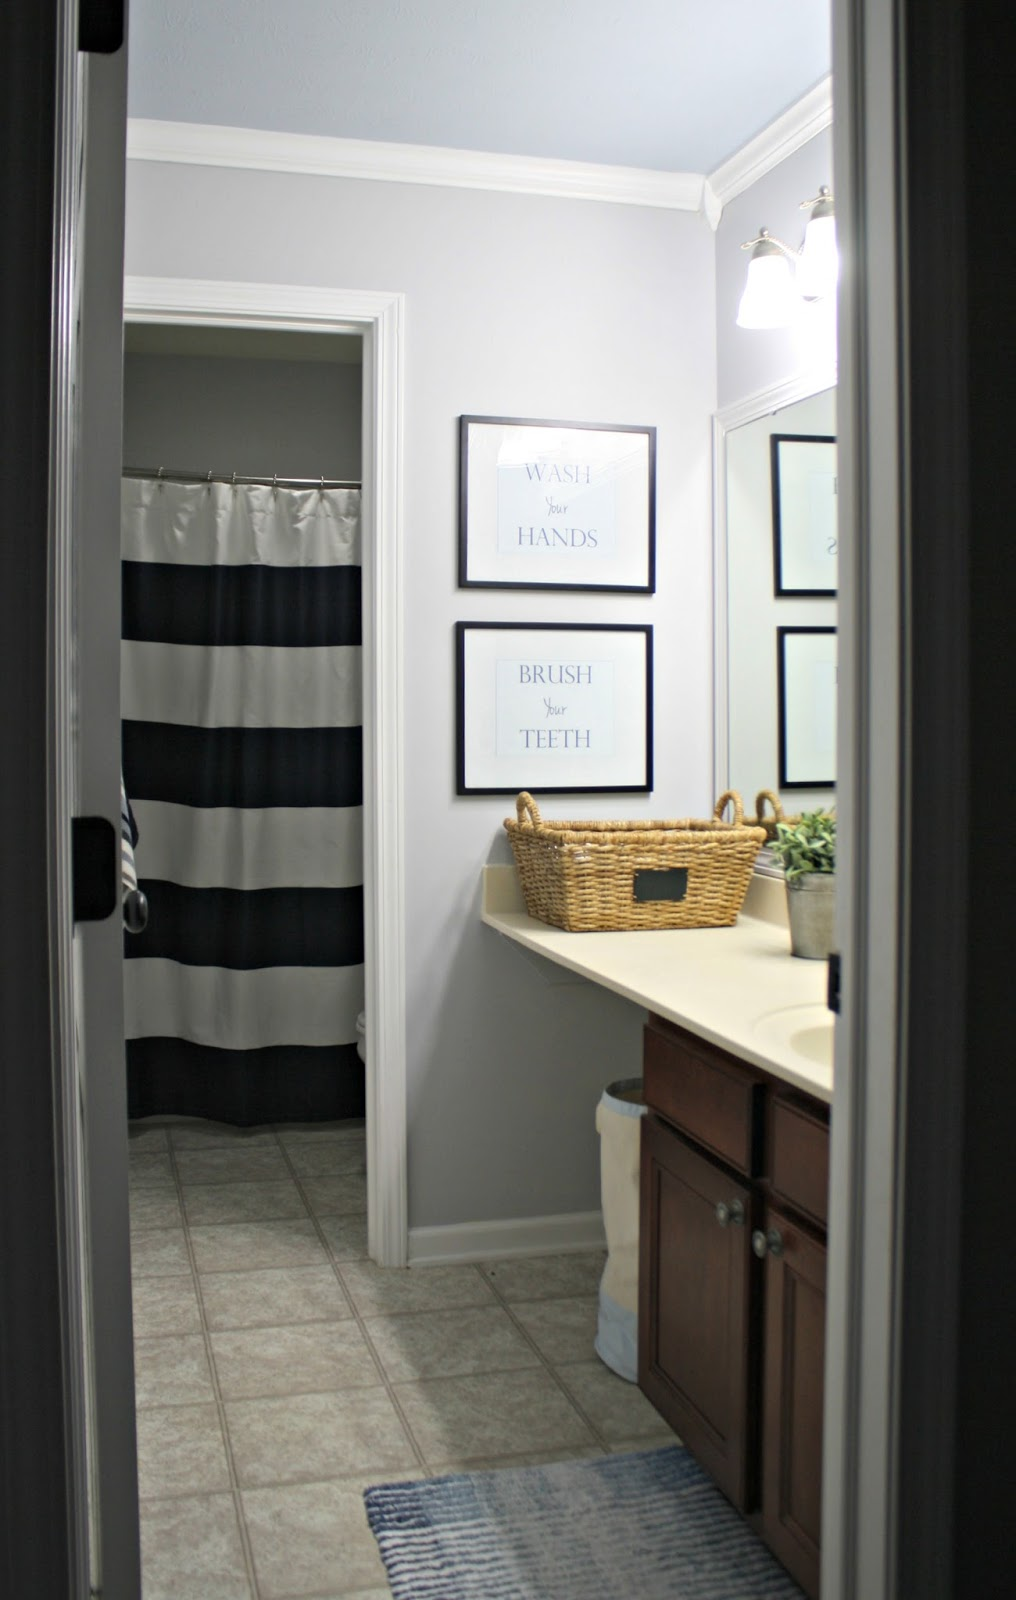 Remodeling Bathroom While Pregnant the bathroom renovation has started! from thrifty decor chick